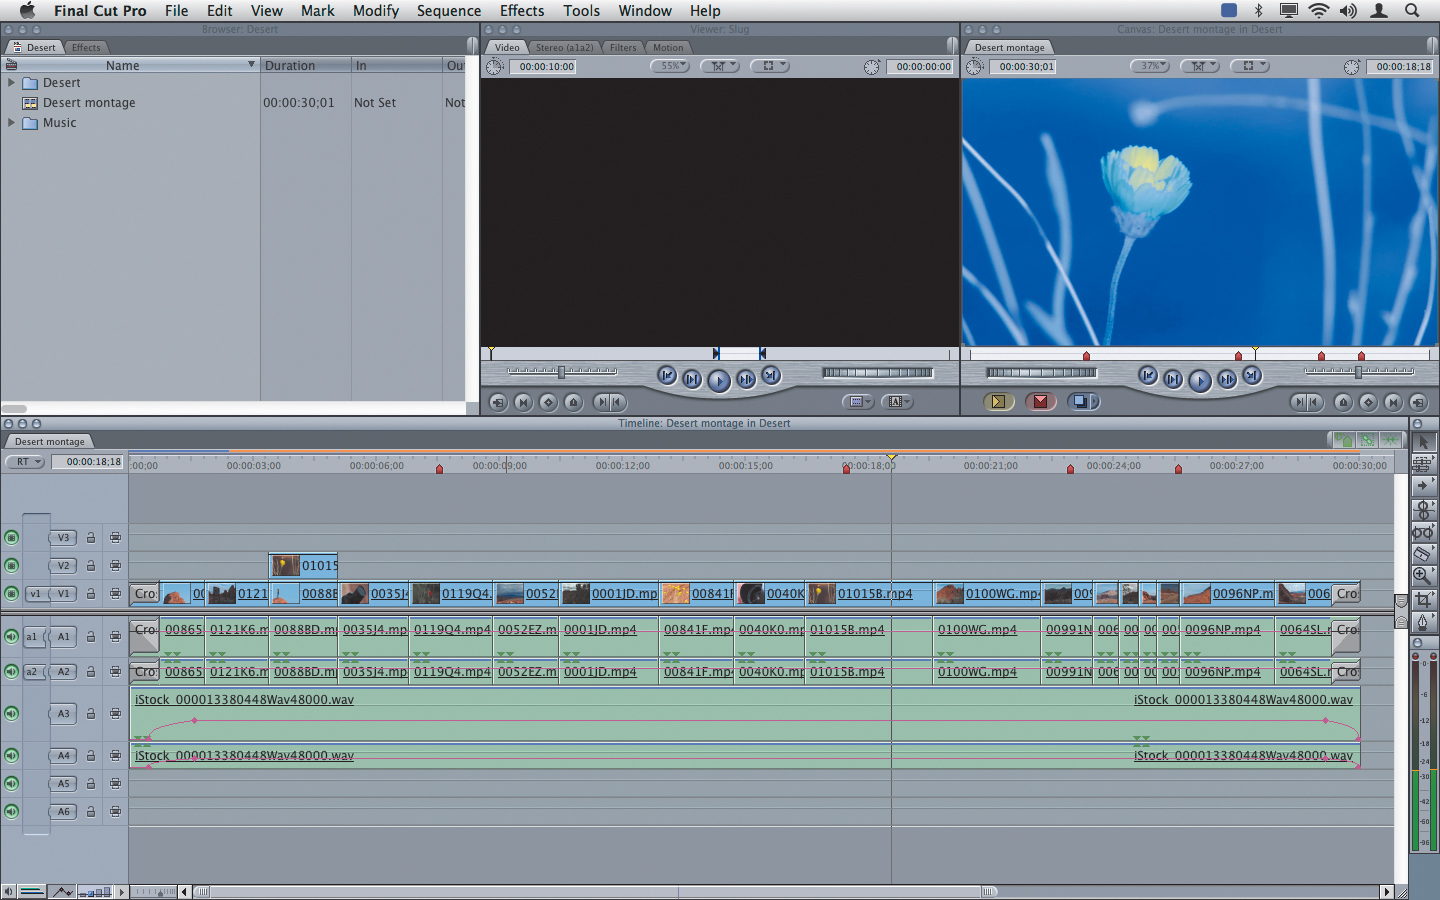 Appendix D  Working with Final Cut Pro - An Editor's Guide to Adobe